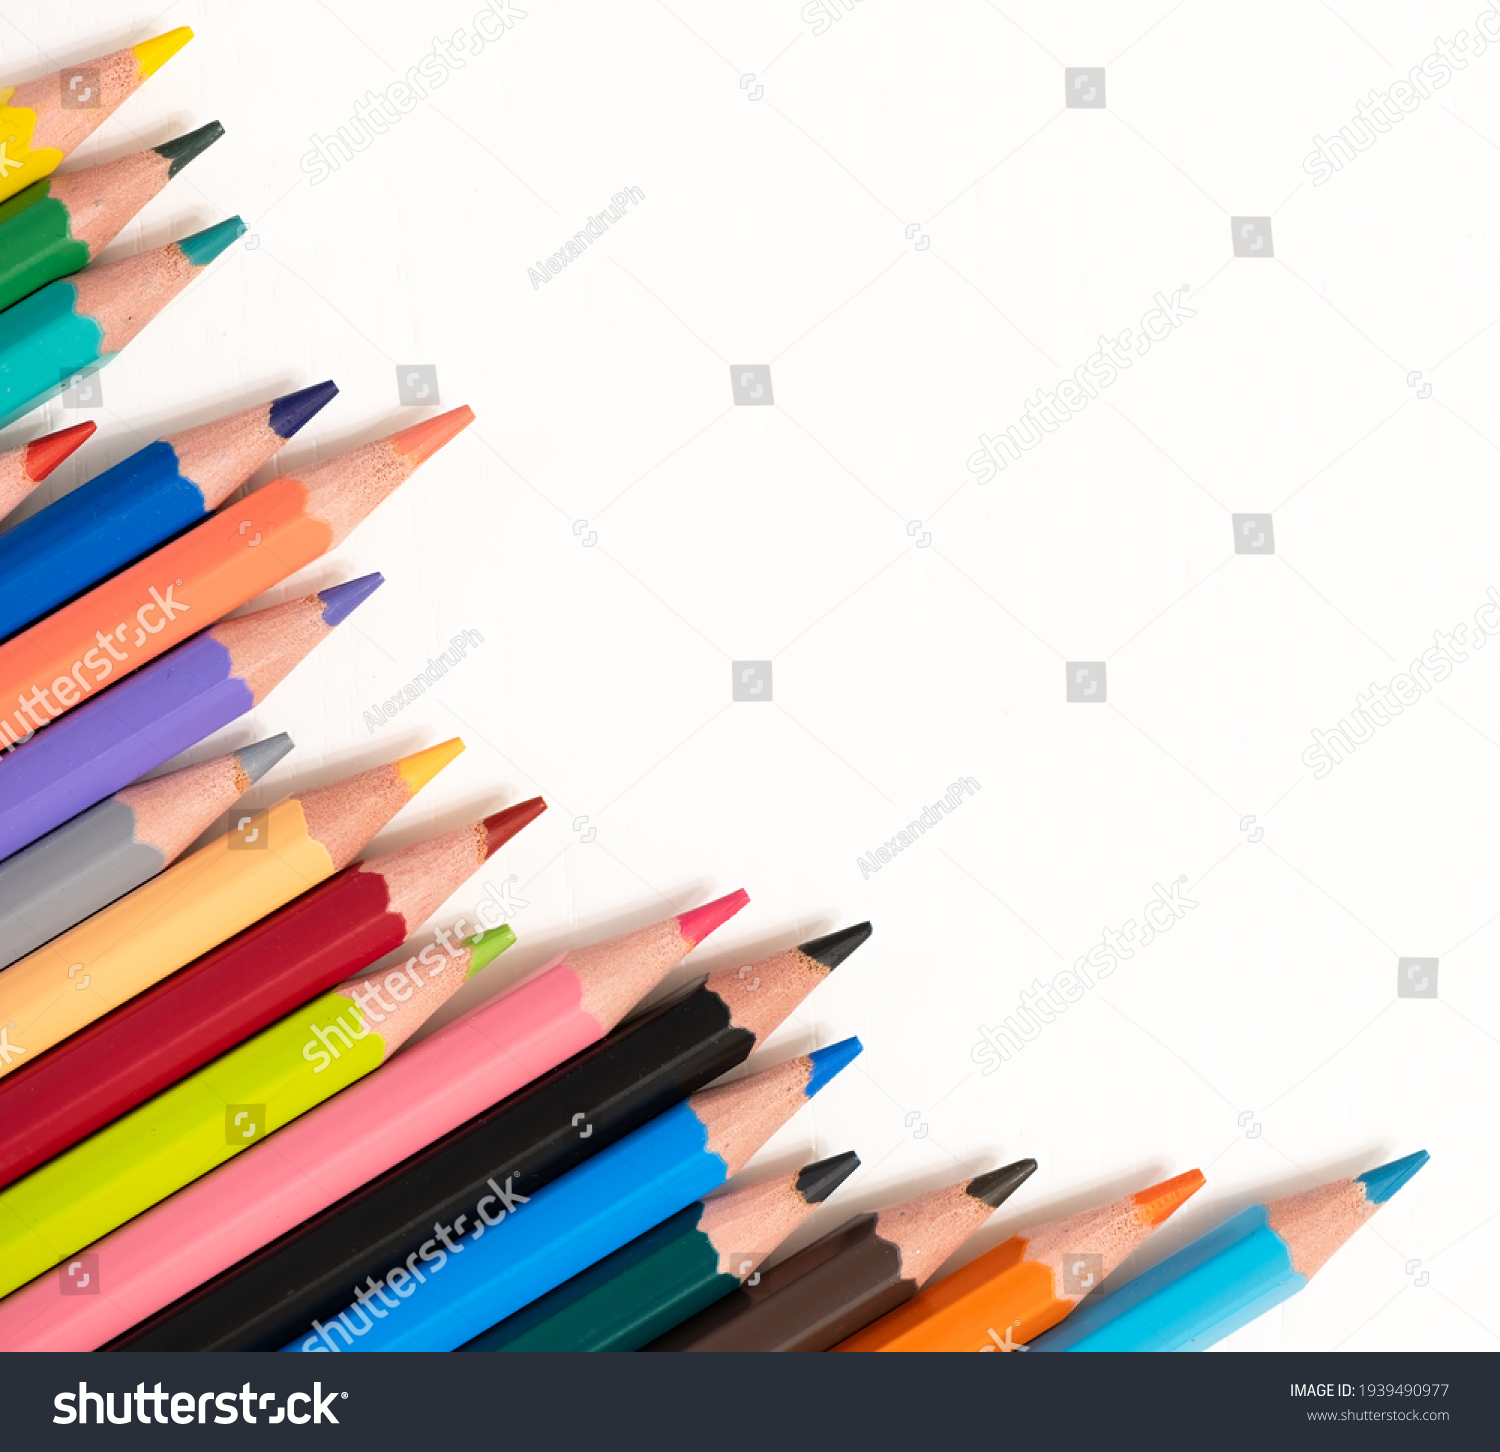 Color pencils on white background, top right view with space for text. Back to school concept copy space for text #1939490977